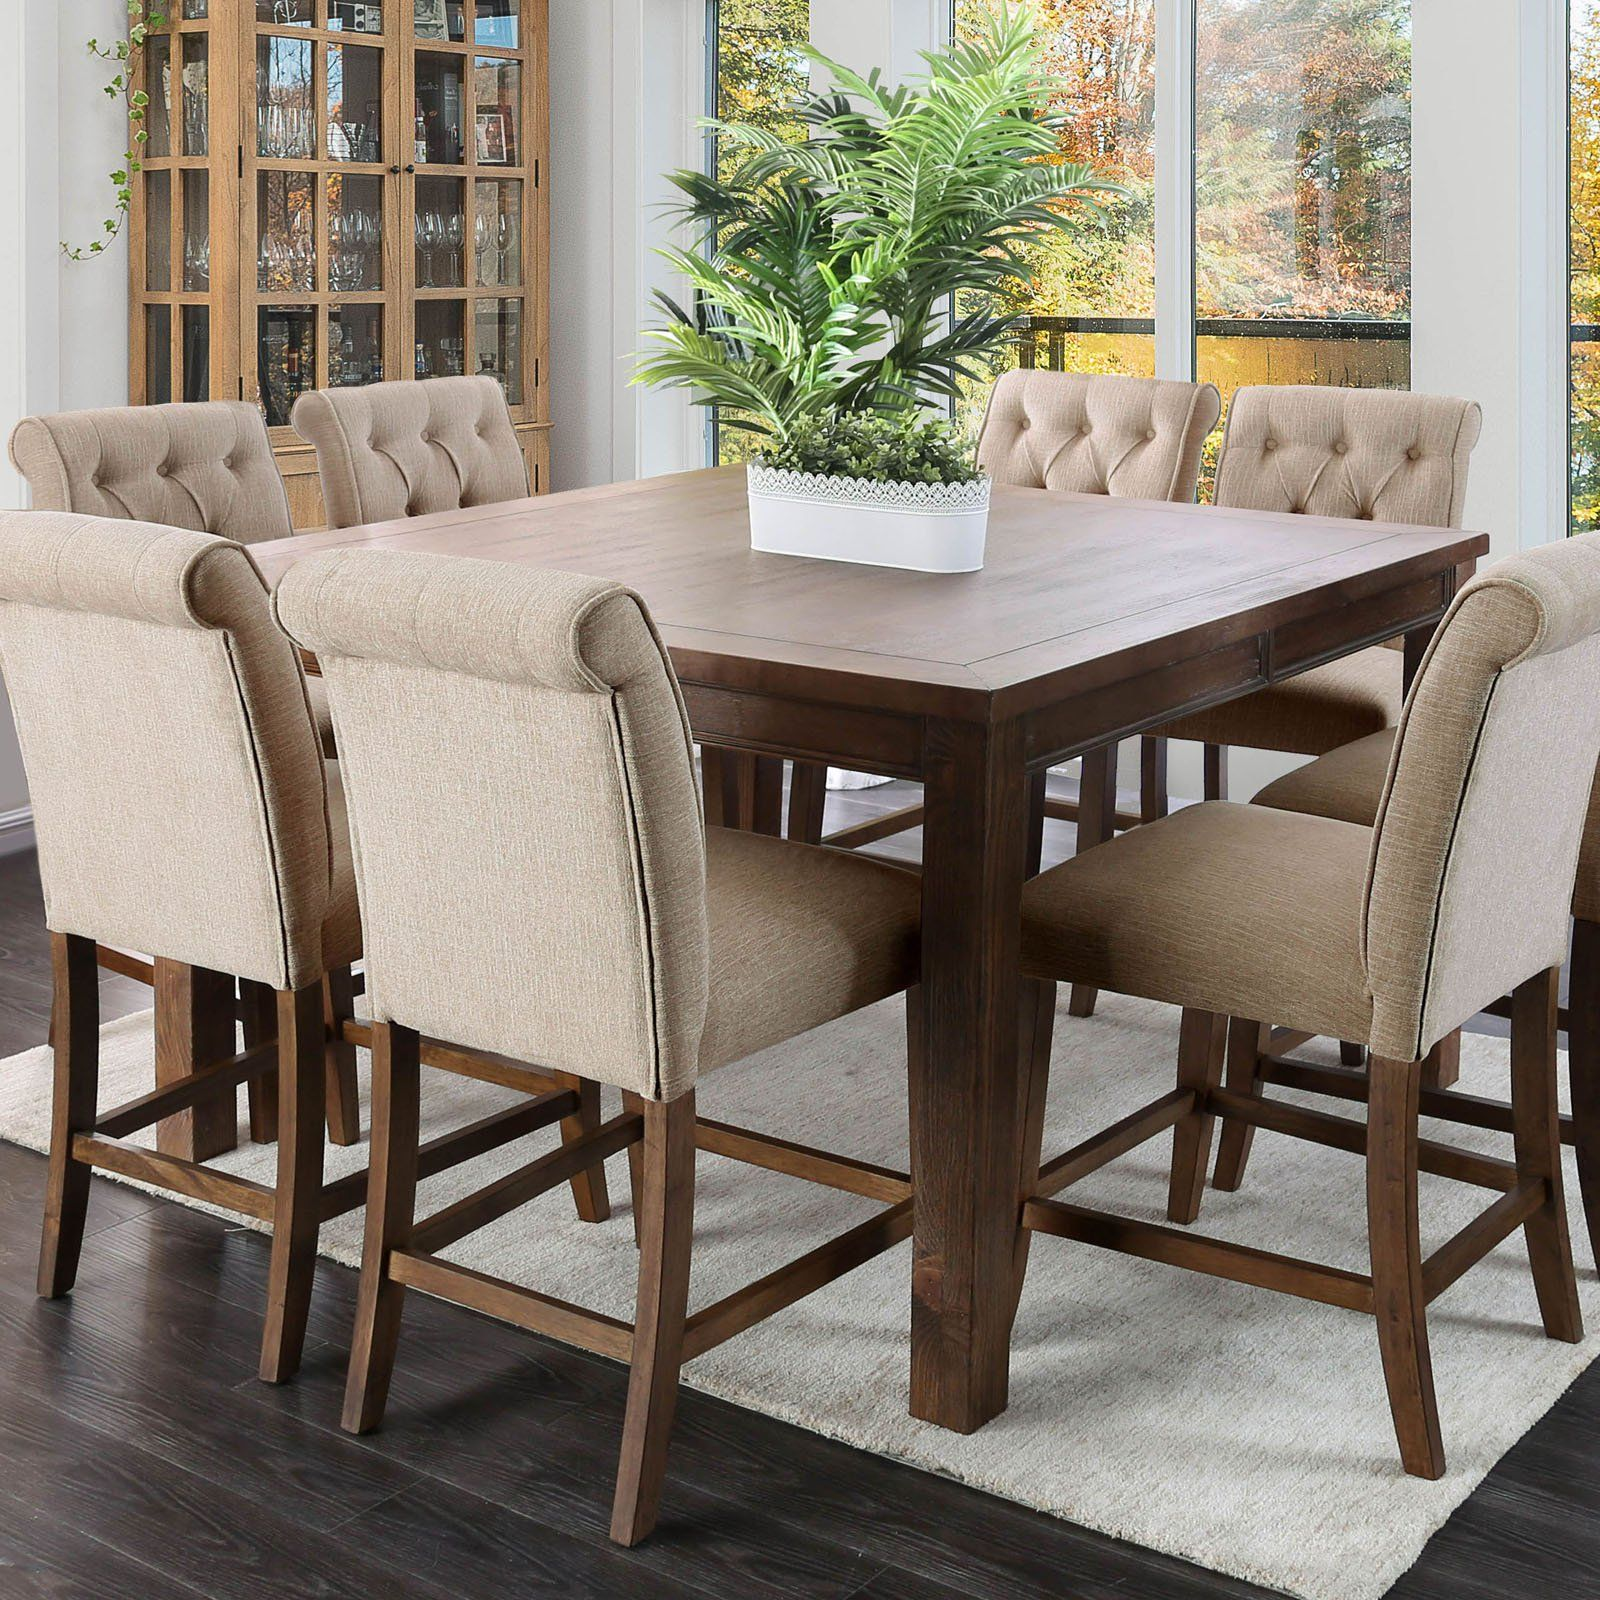 Home In 2020 Counter Height Dining Table Counter Height Dining